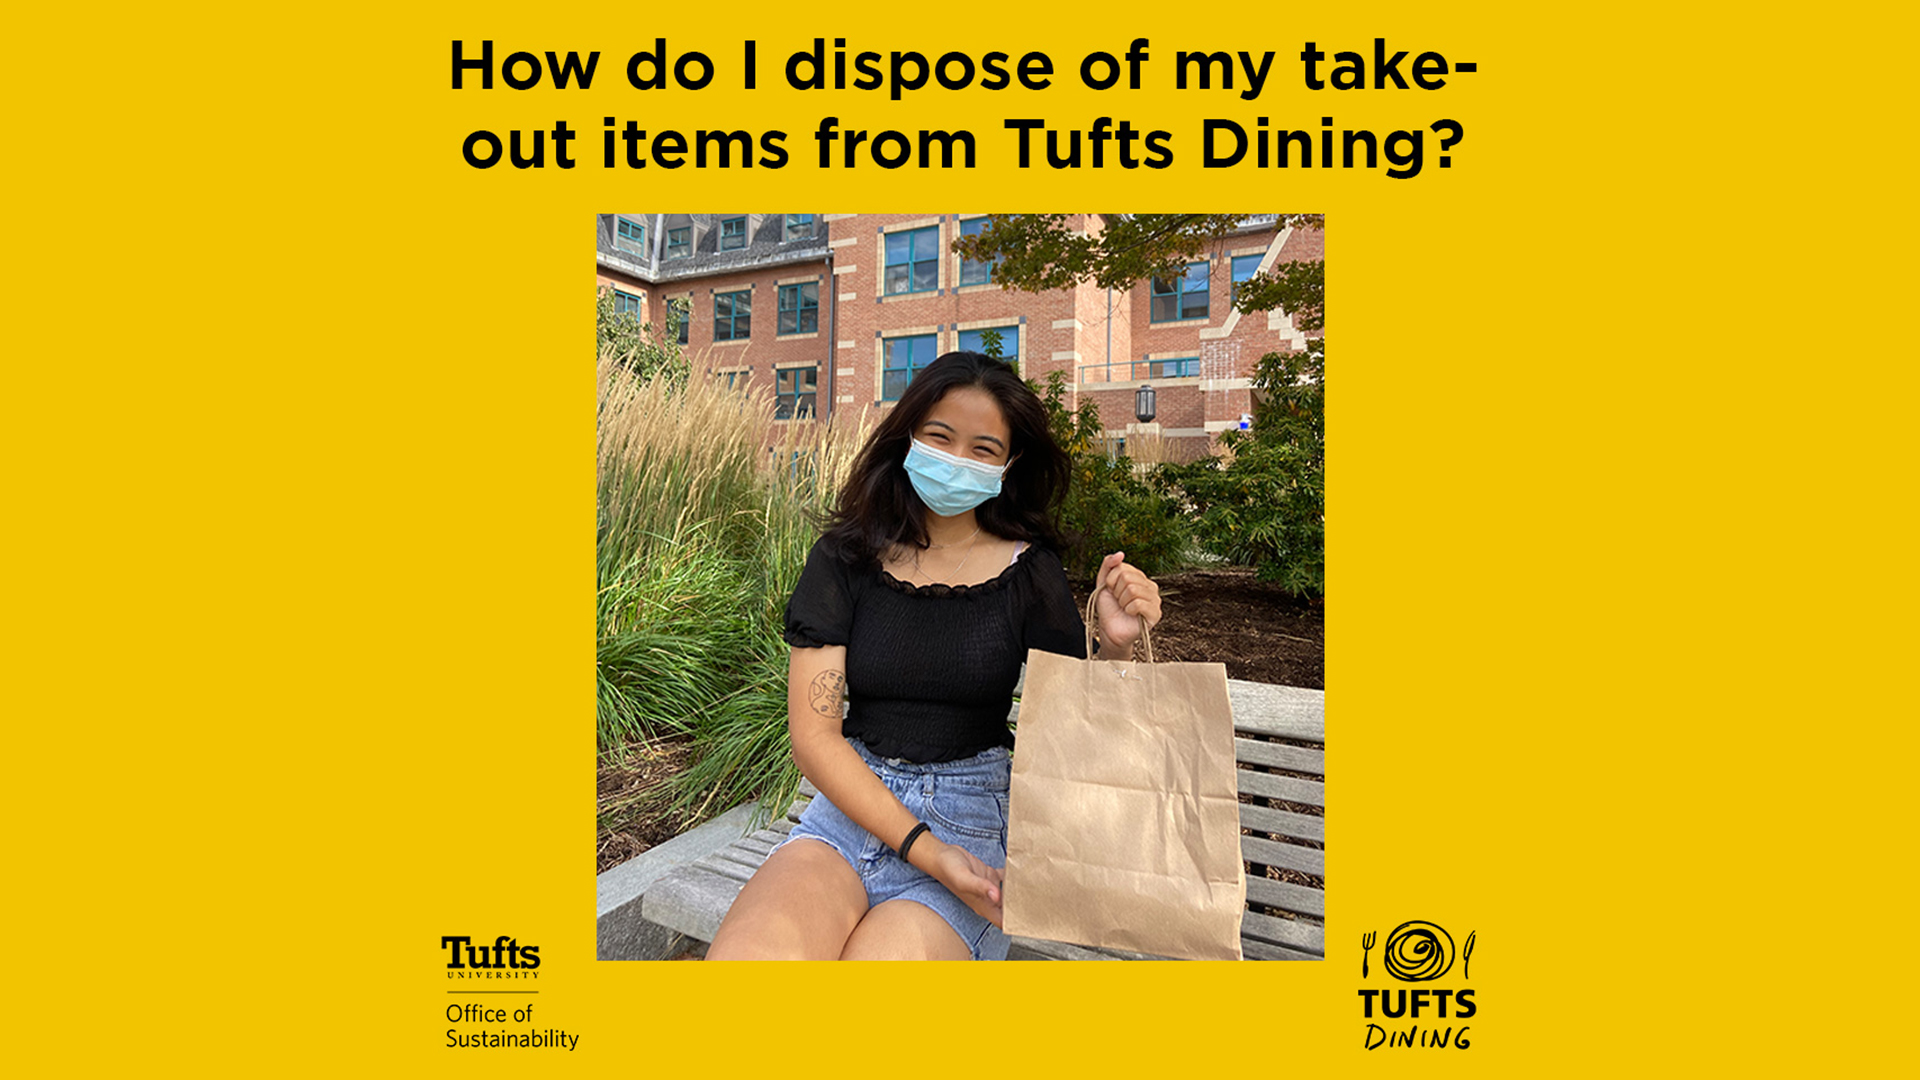 Learn How to Properly Dispose of Your Takeout Items from Tufts Dining!